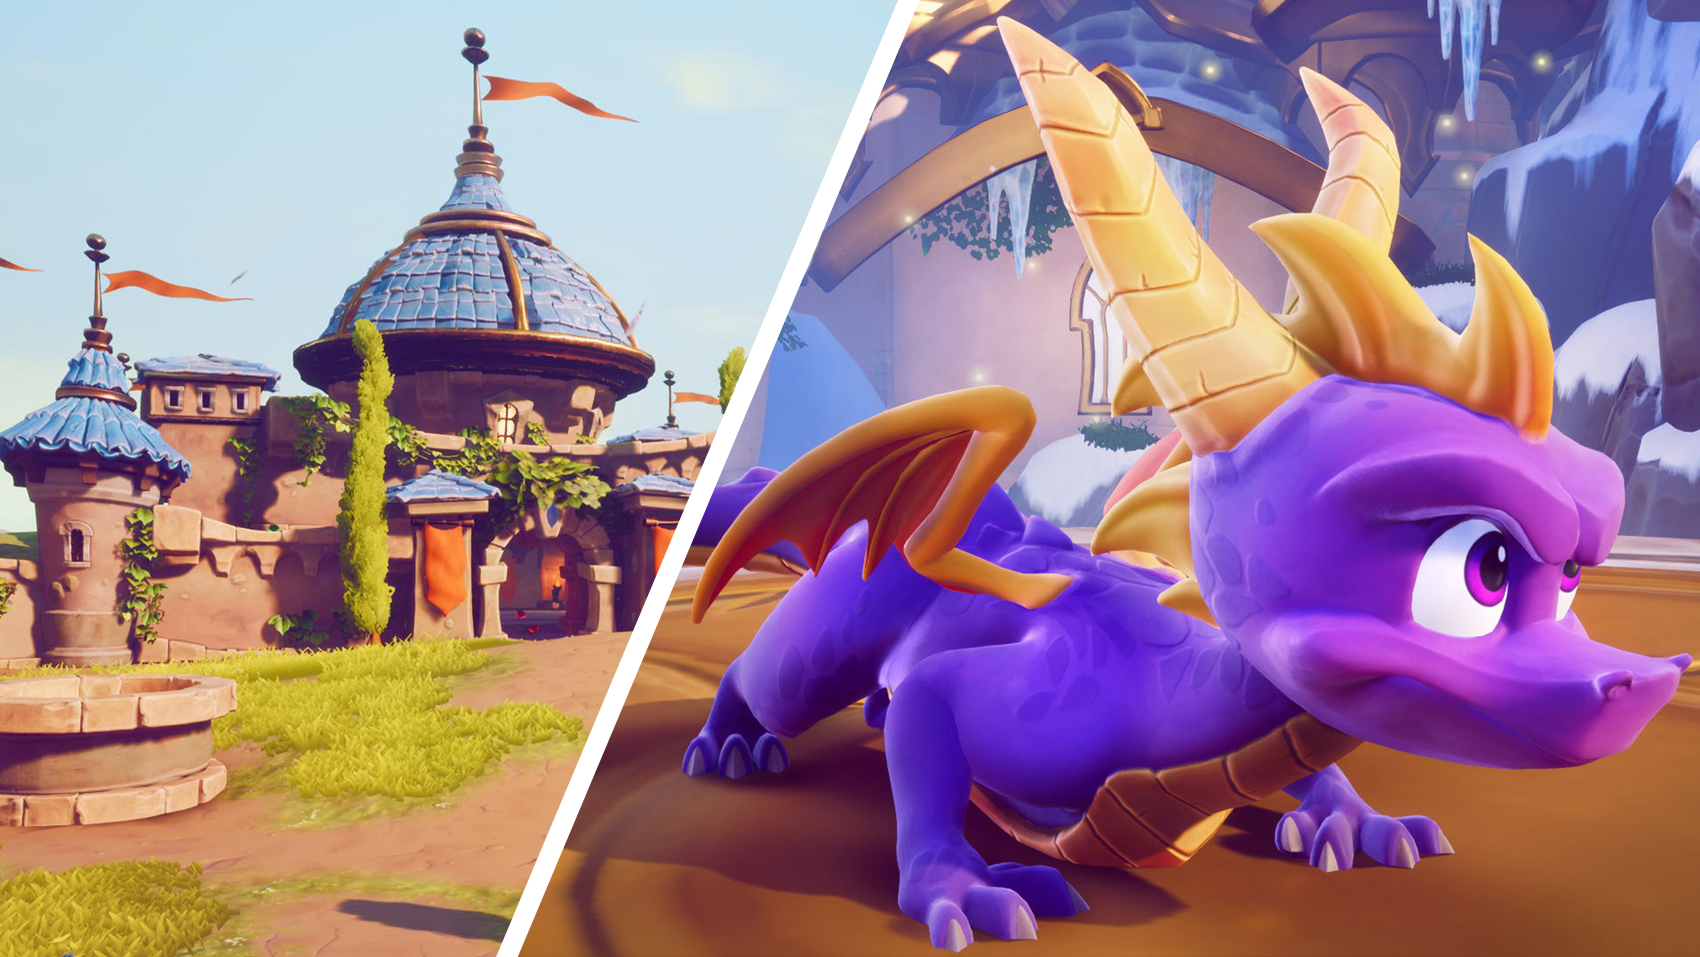 spyrorecension